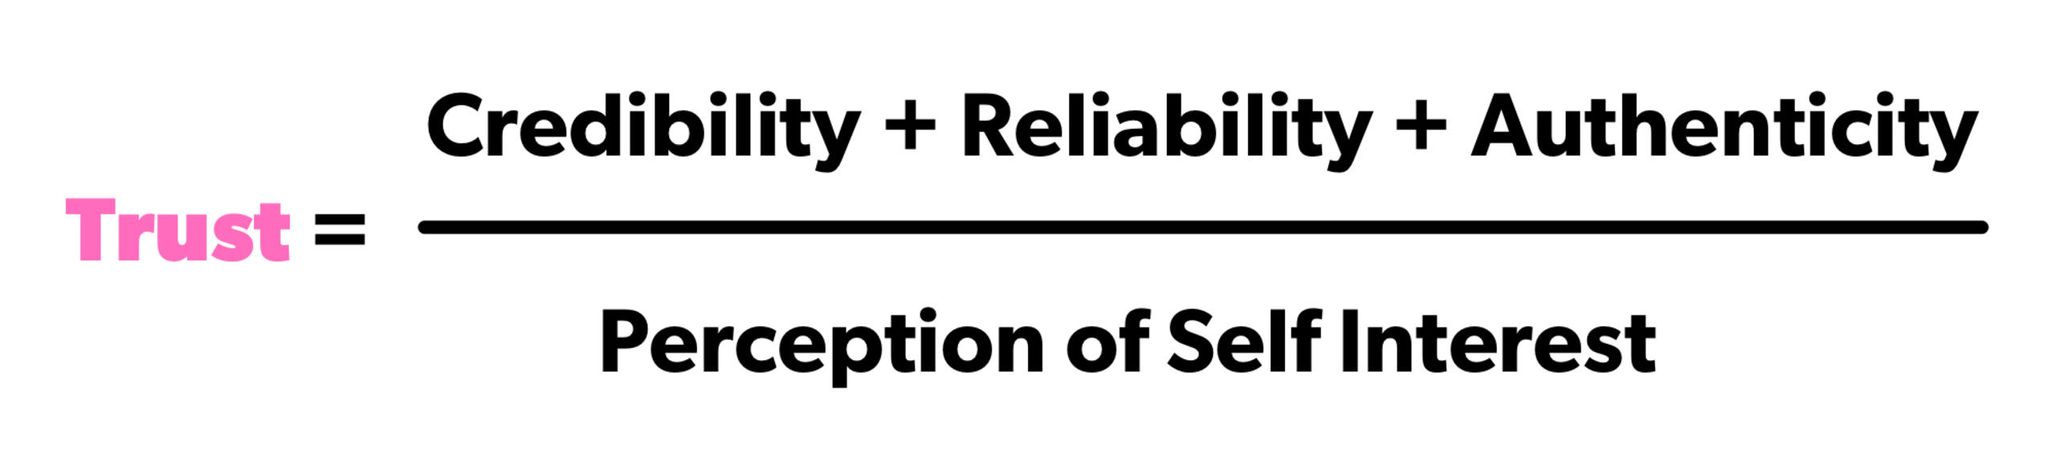 Trust= credibility + reliability + authenticity / perception of self interest